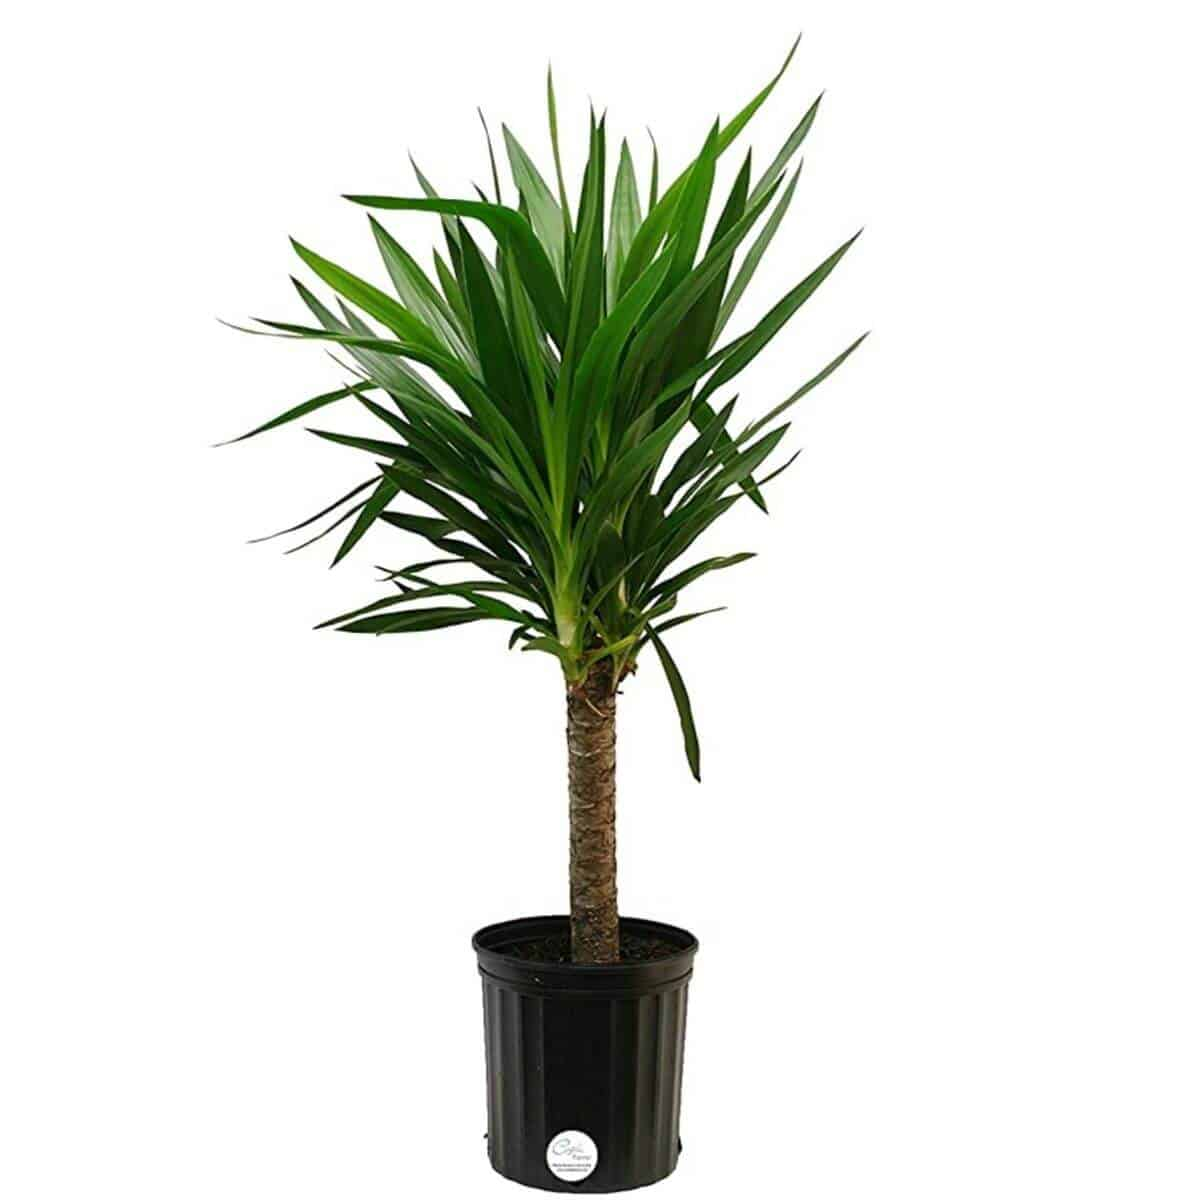 Yucca plant in a black planter.